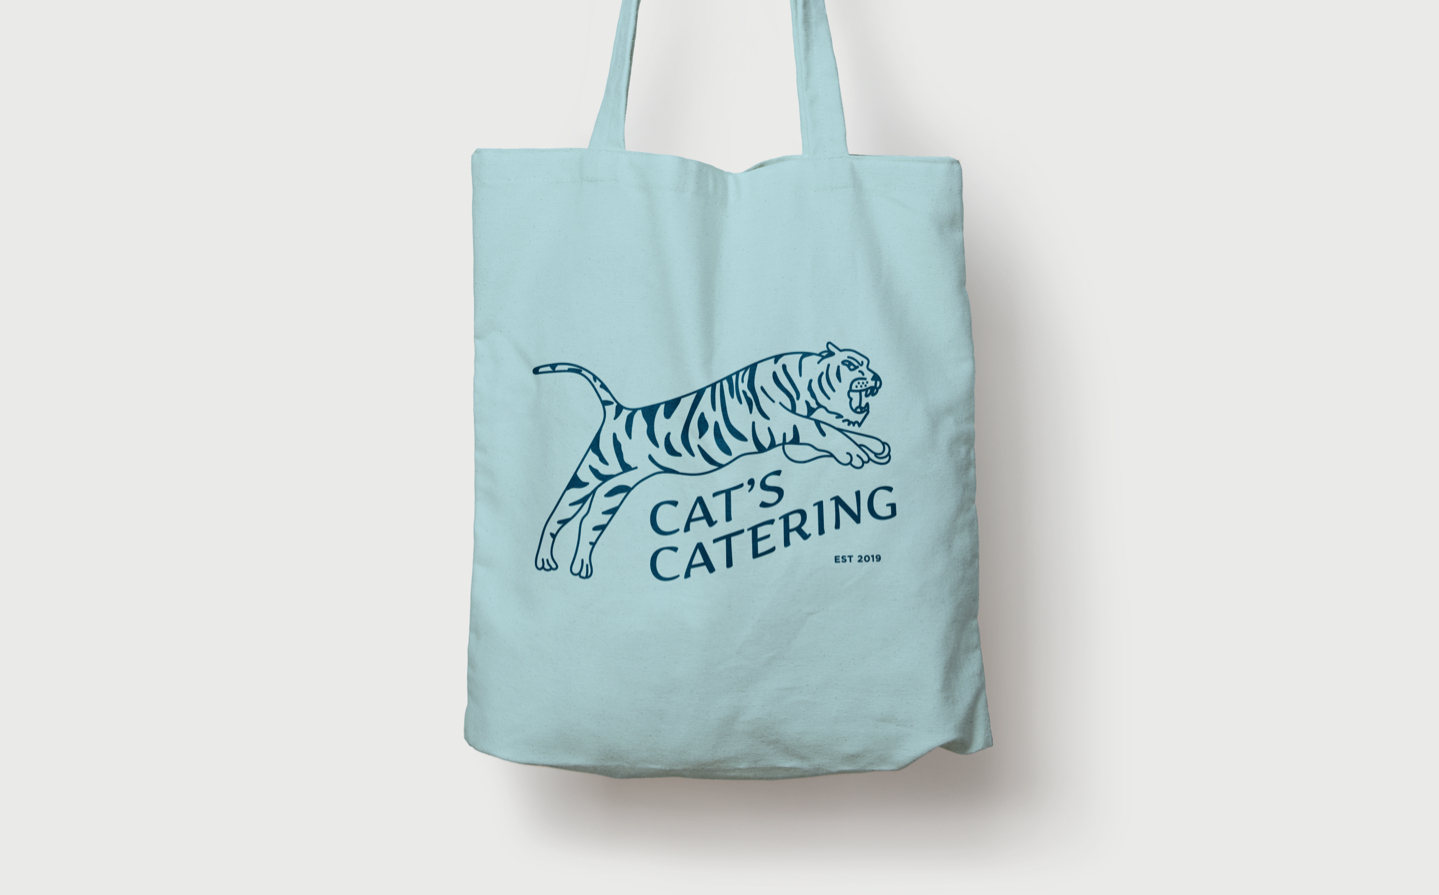 cats-catering-tote-design